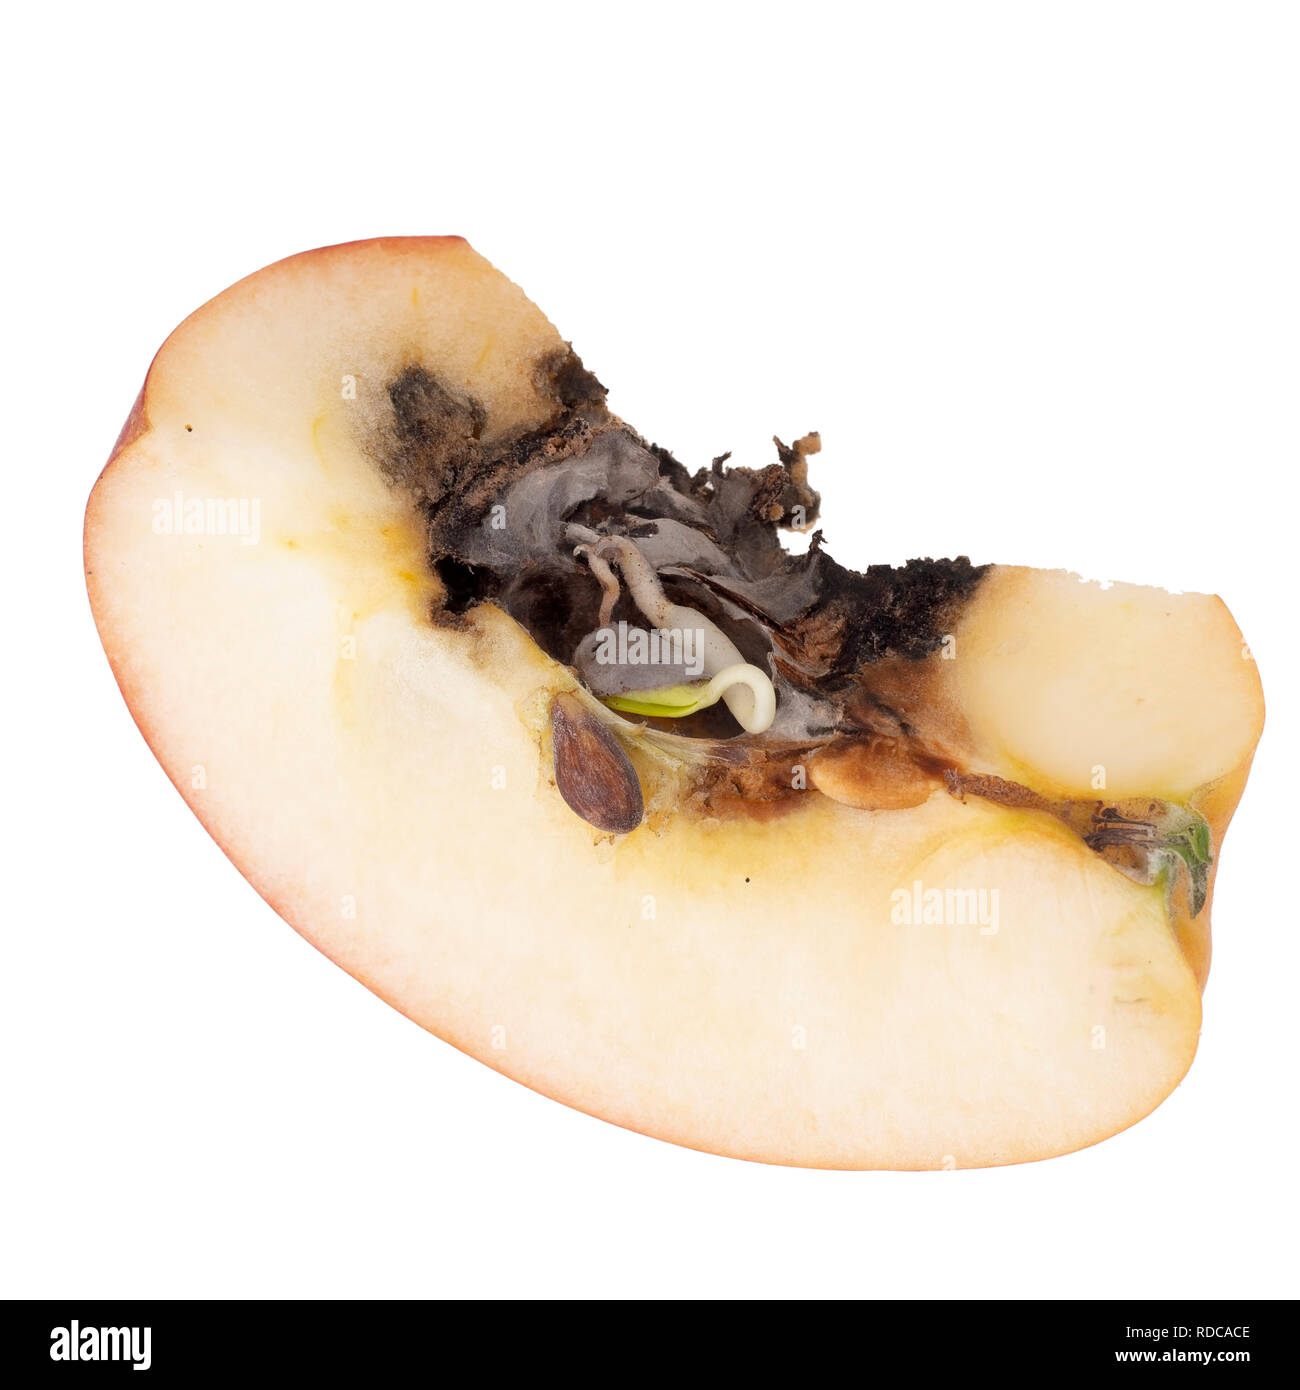 Vivipary in apple. Sliced to clearly show seeds, pips are already growing in the core when the fruit is cut open. - Stock Image